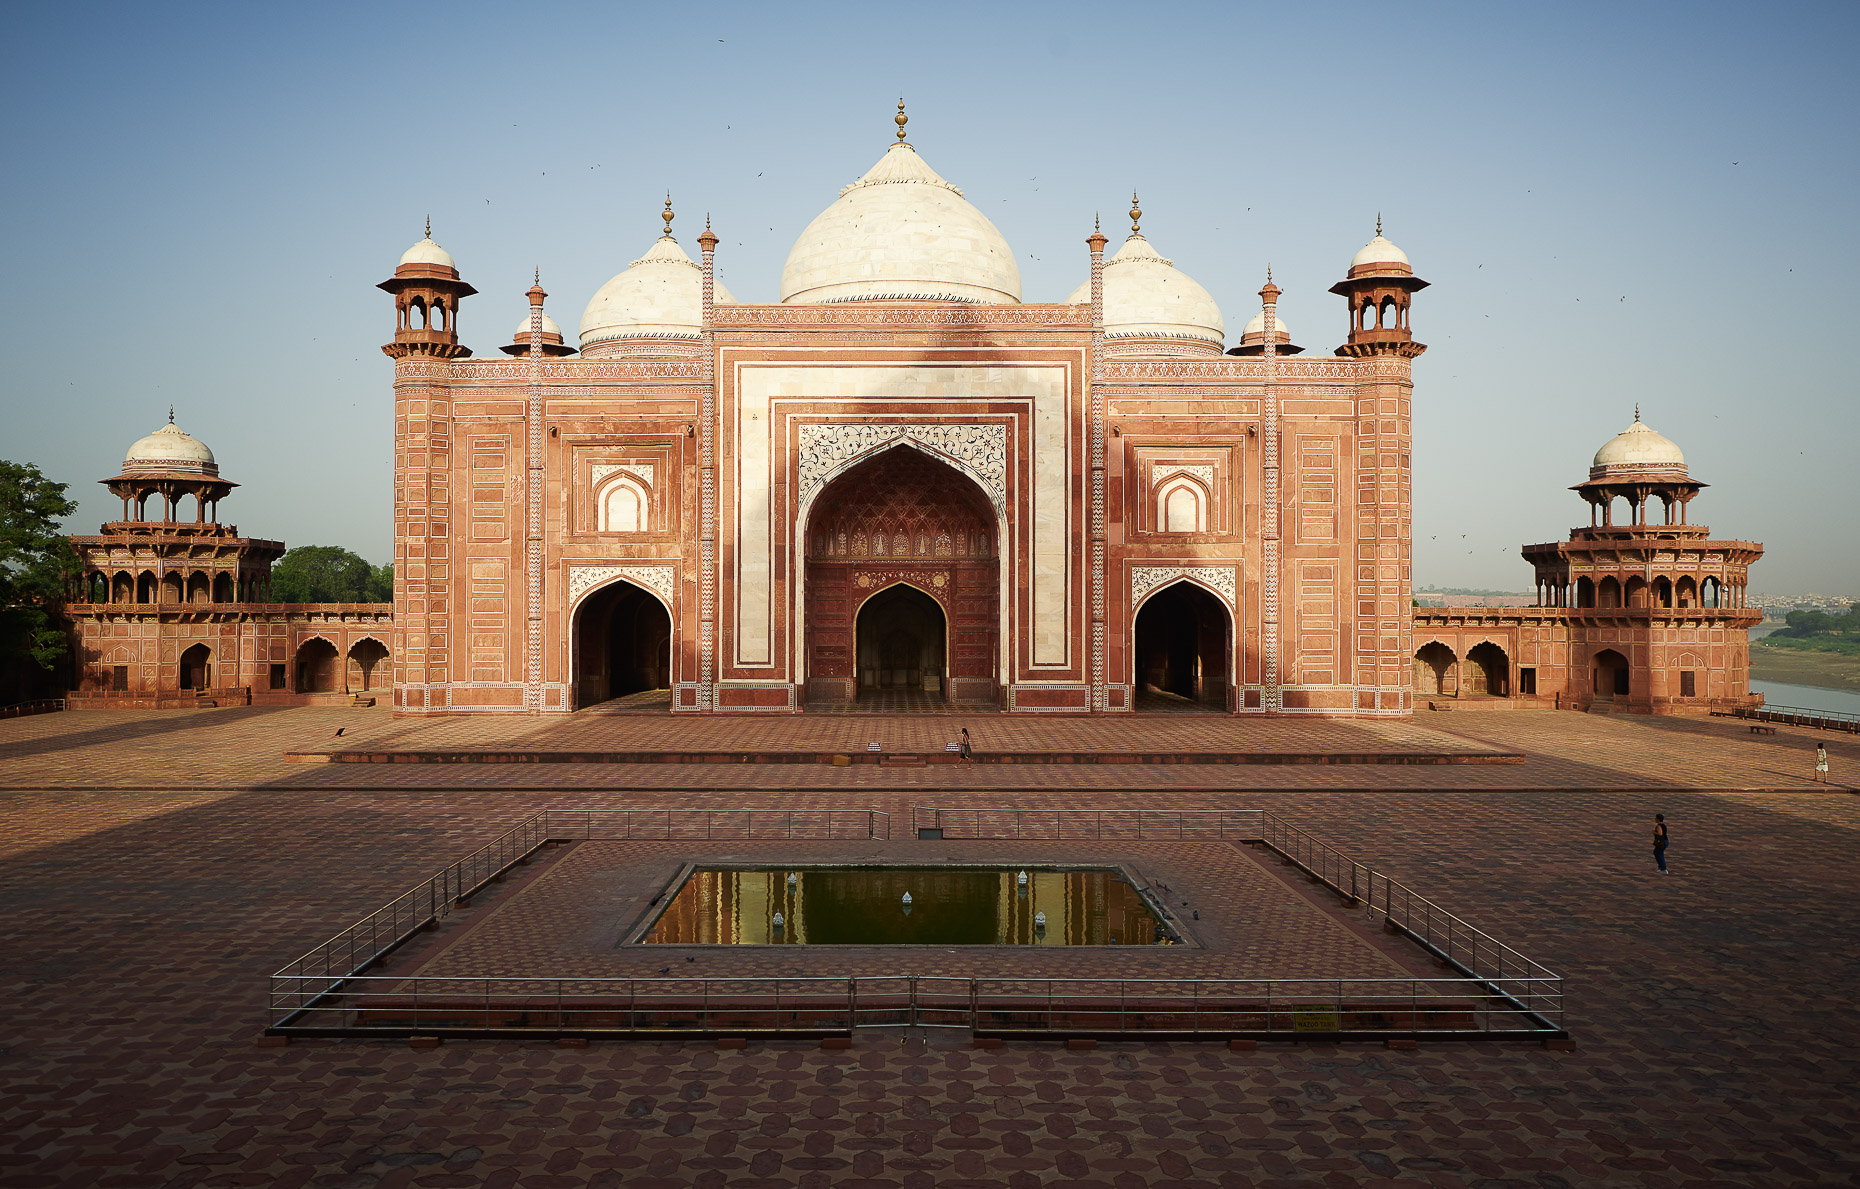 Personal_India_Agra_L1060069-29